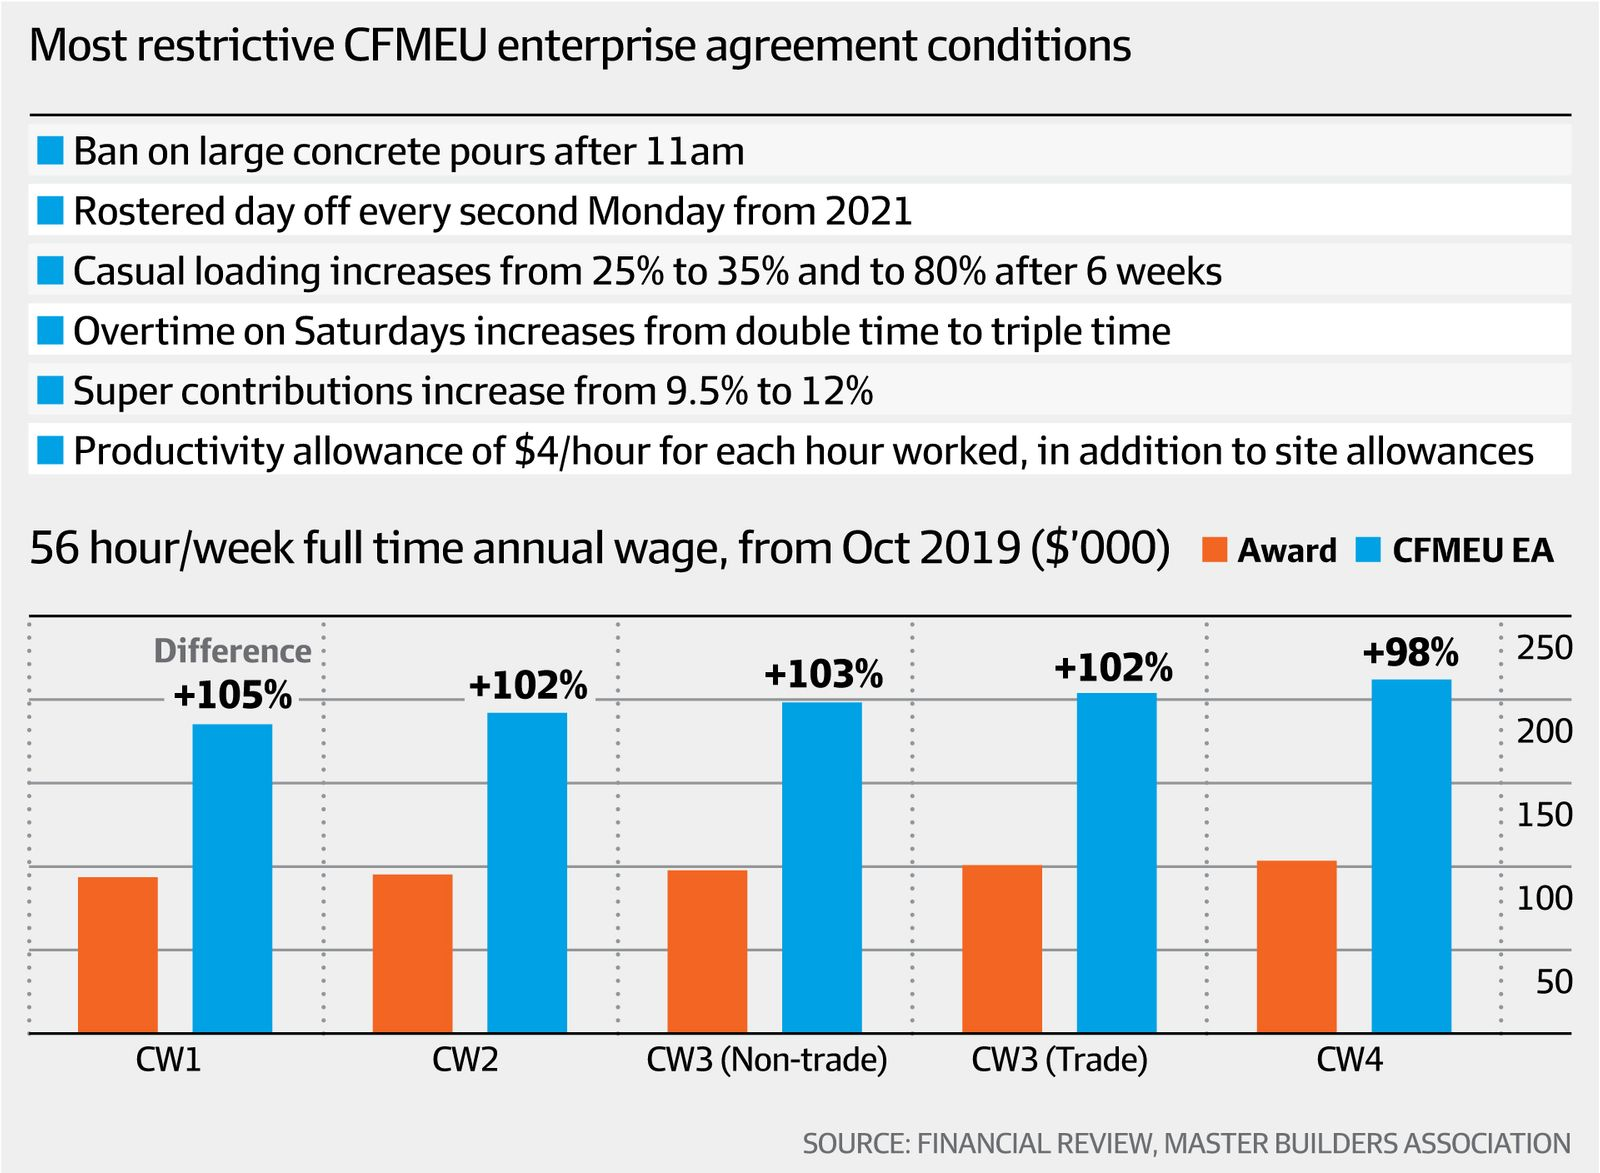 Restrictive CFMEU agreement conditions